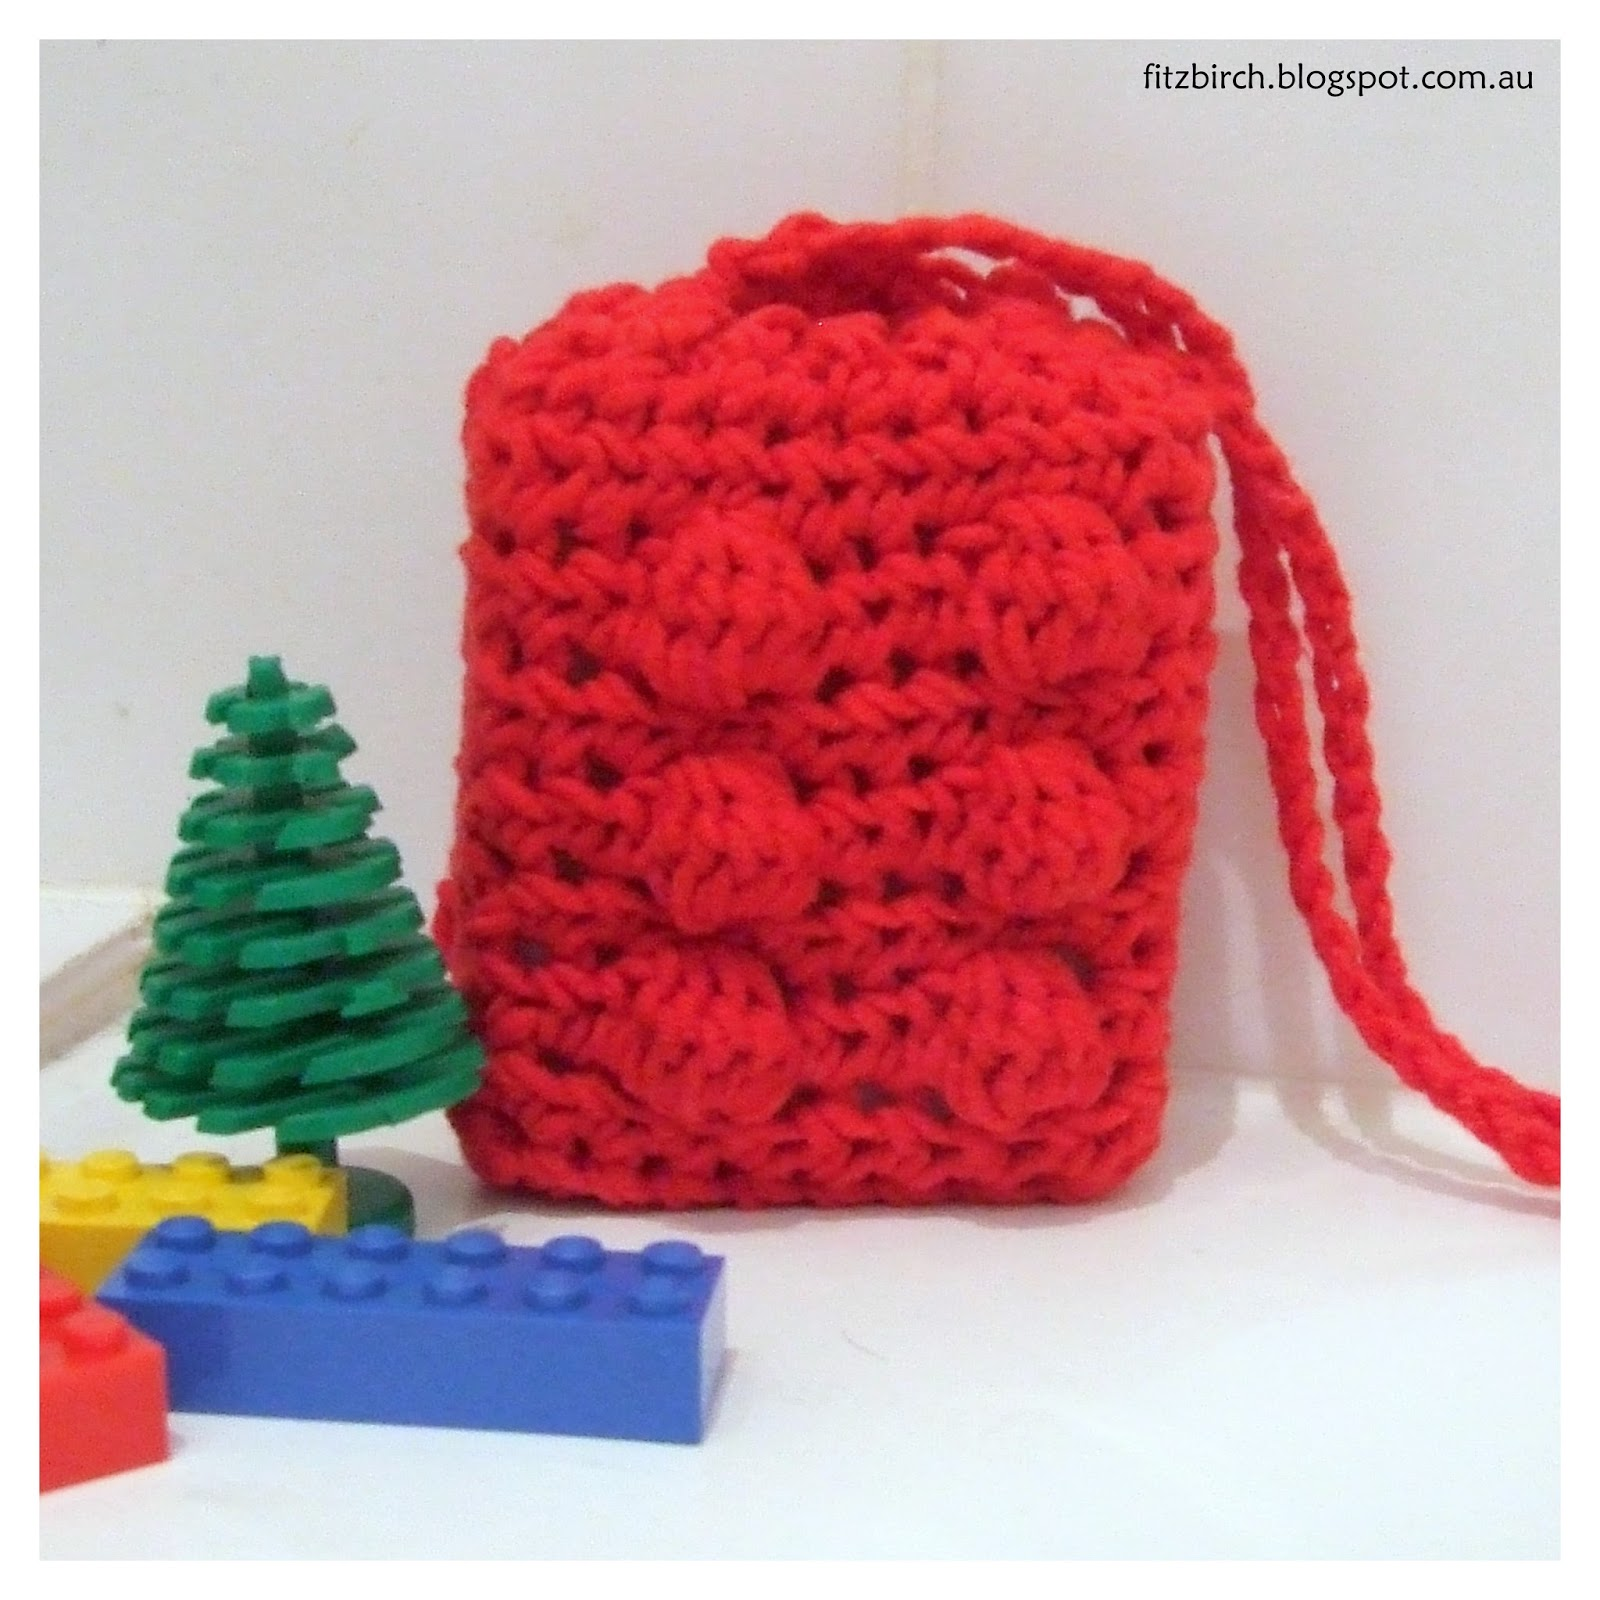 Free Crochet Pattern Christmas Gifts : FitzBirch Crafts: Quick Crochet Gifts for Christmas